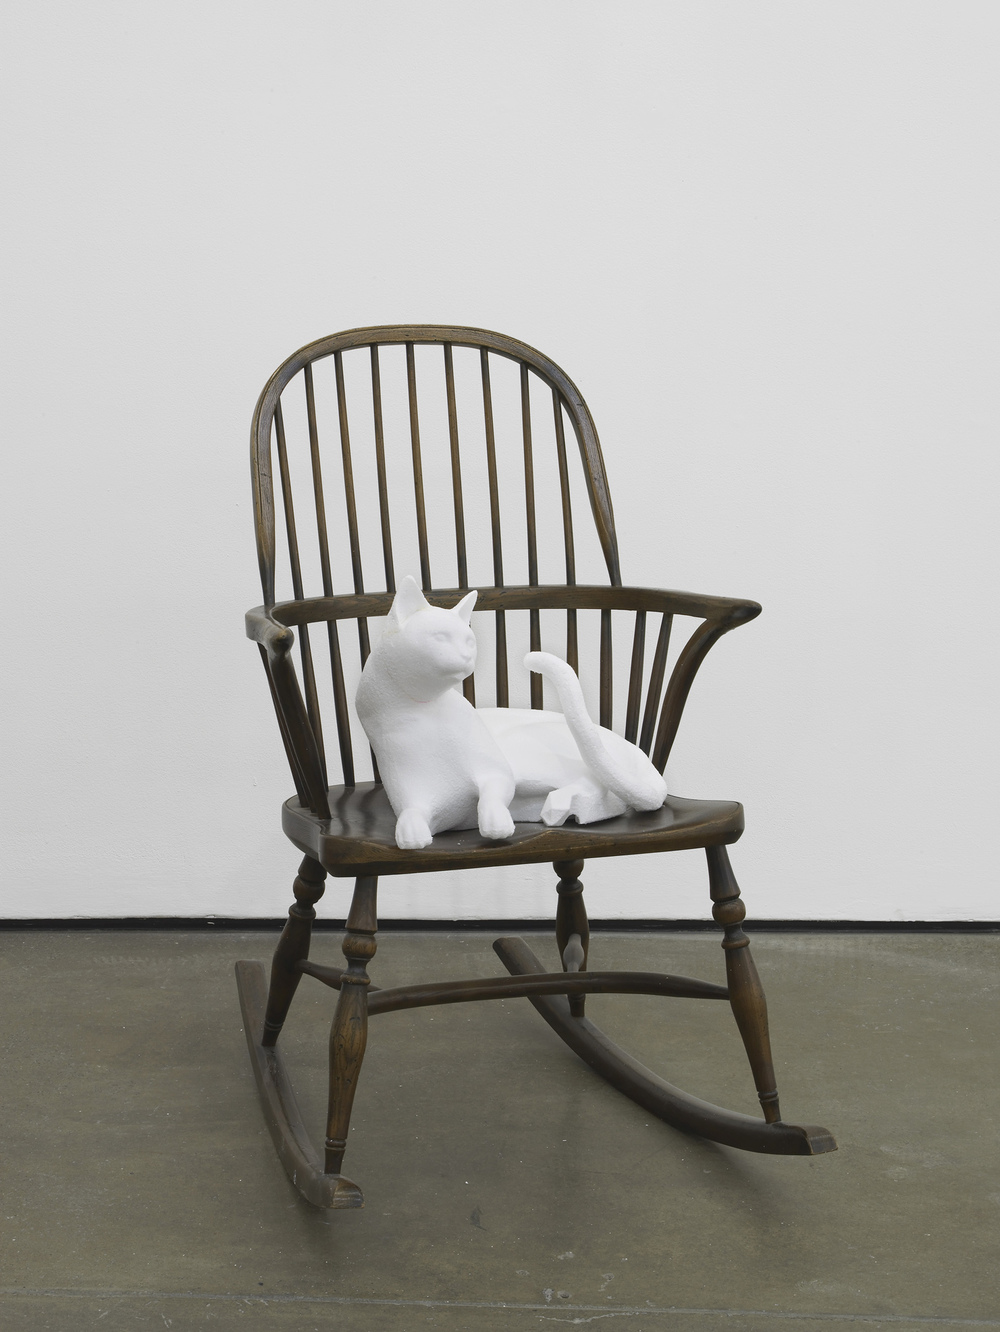 Seated Cat  2014  Polystyrene and 18th century style Windsor rocking chair  100 x 62 x 84 cm / 39.3 x 24.4 x 33 in